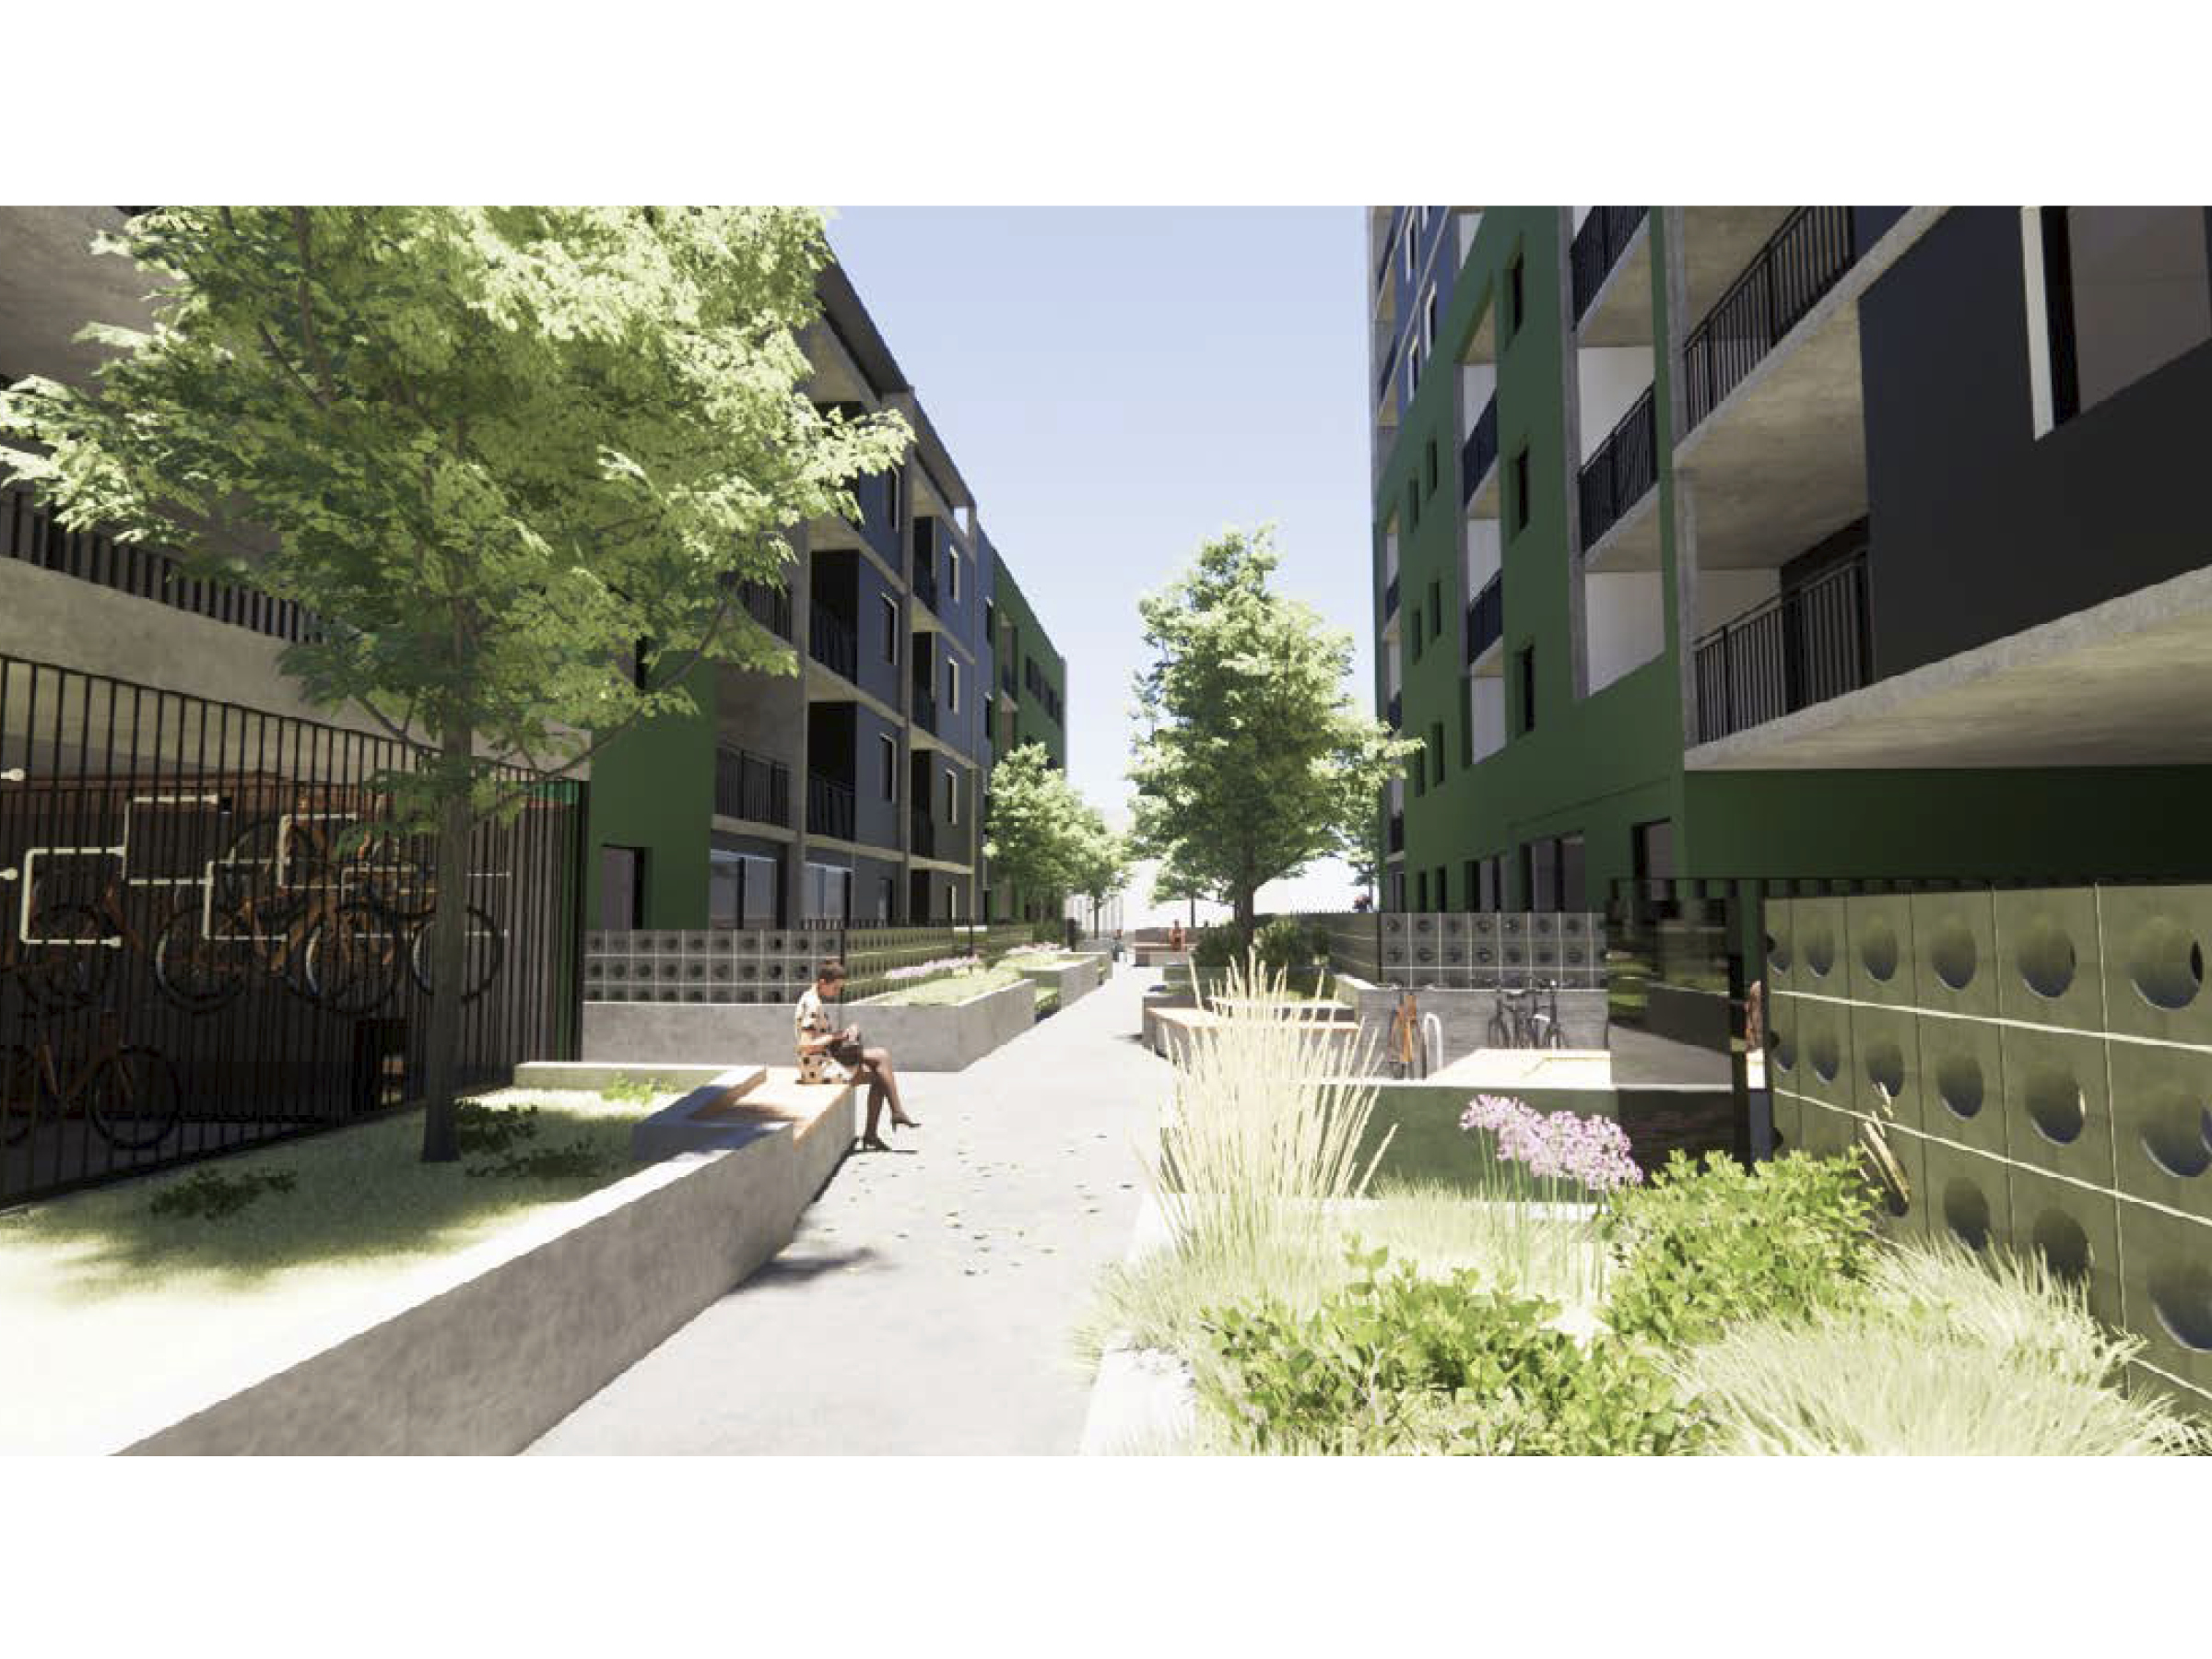 Artist impression of the new development showing the community link looking towards the courtyard. A bike cage is visible.